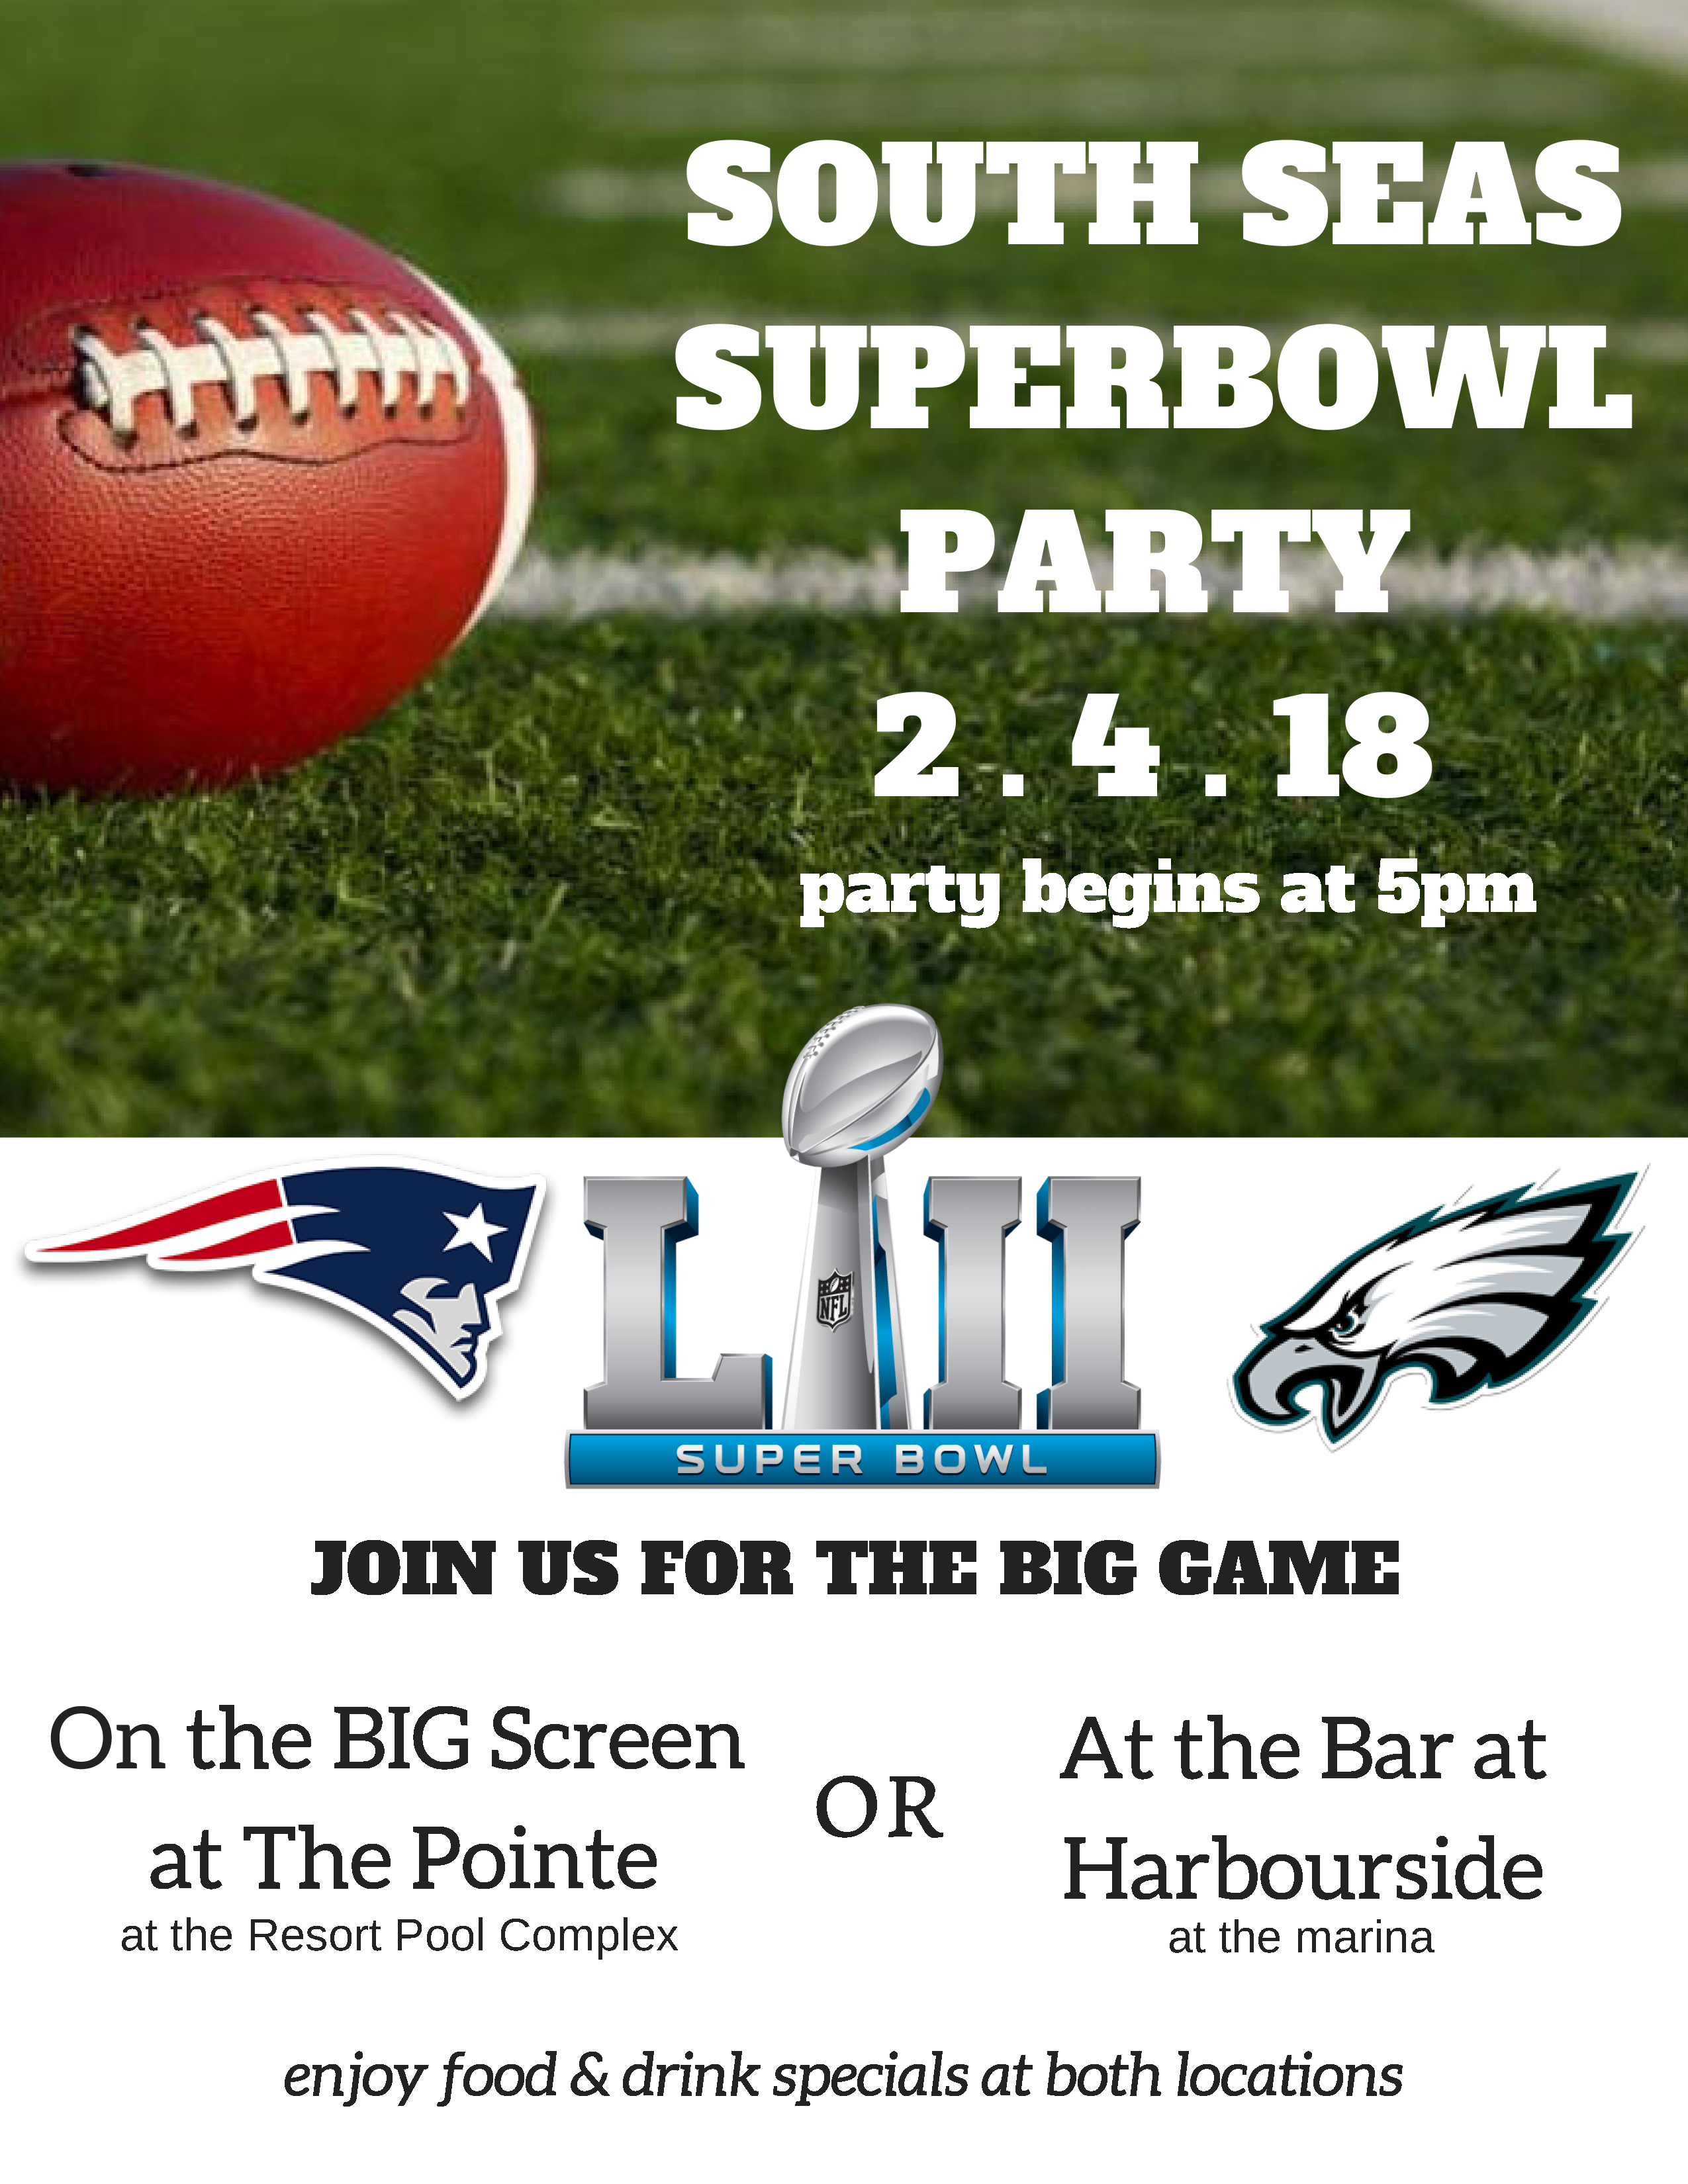 JOIN US FOR A SUPERBOWL PARTY